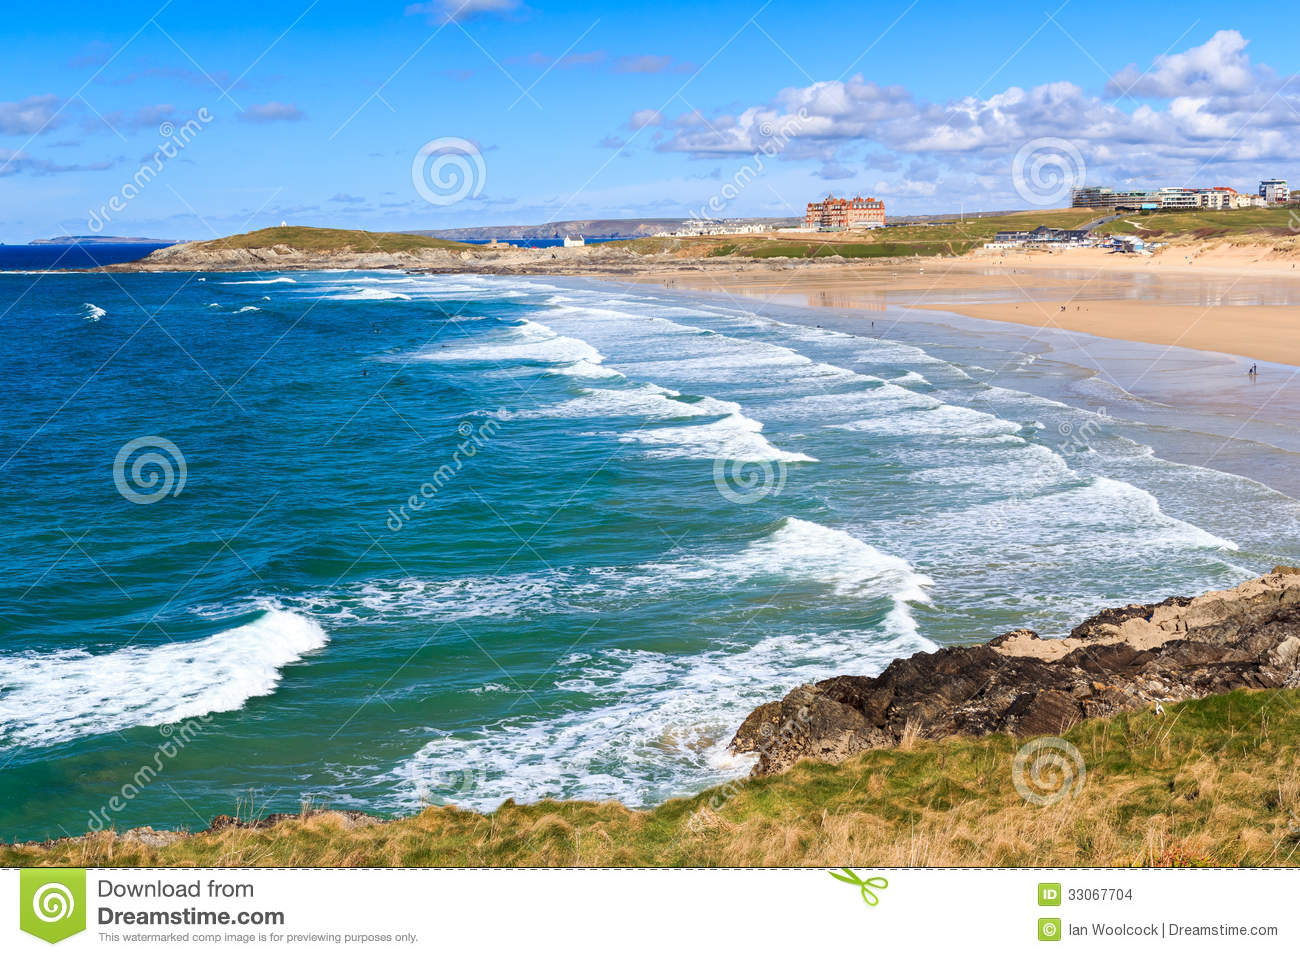 Newquay Cornwall England Stock Images - Image: 33067704